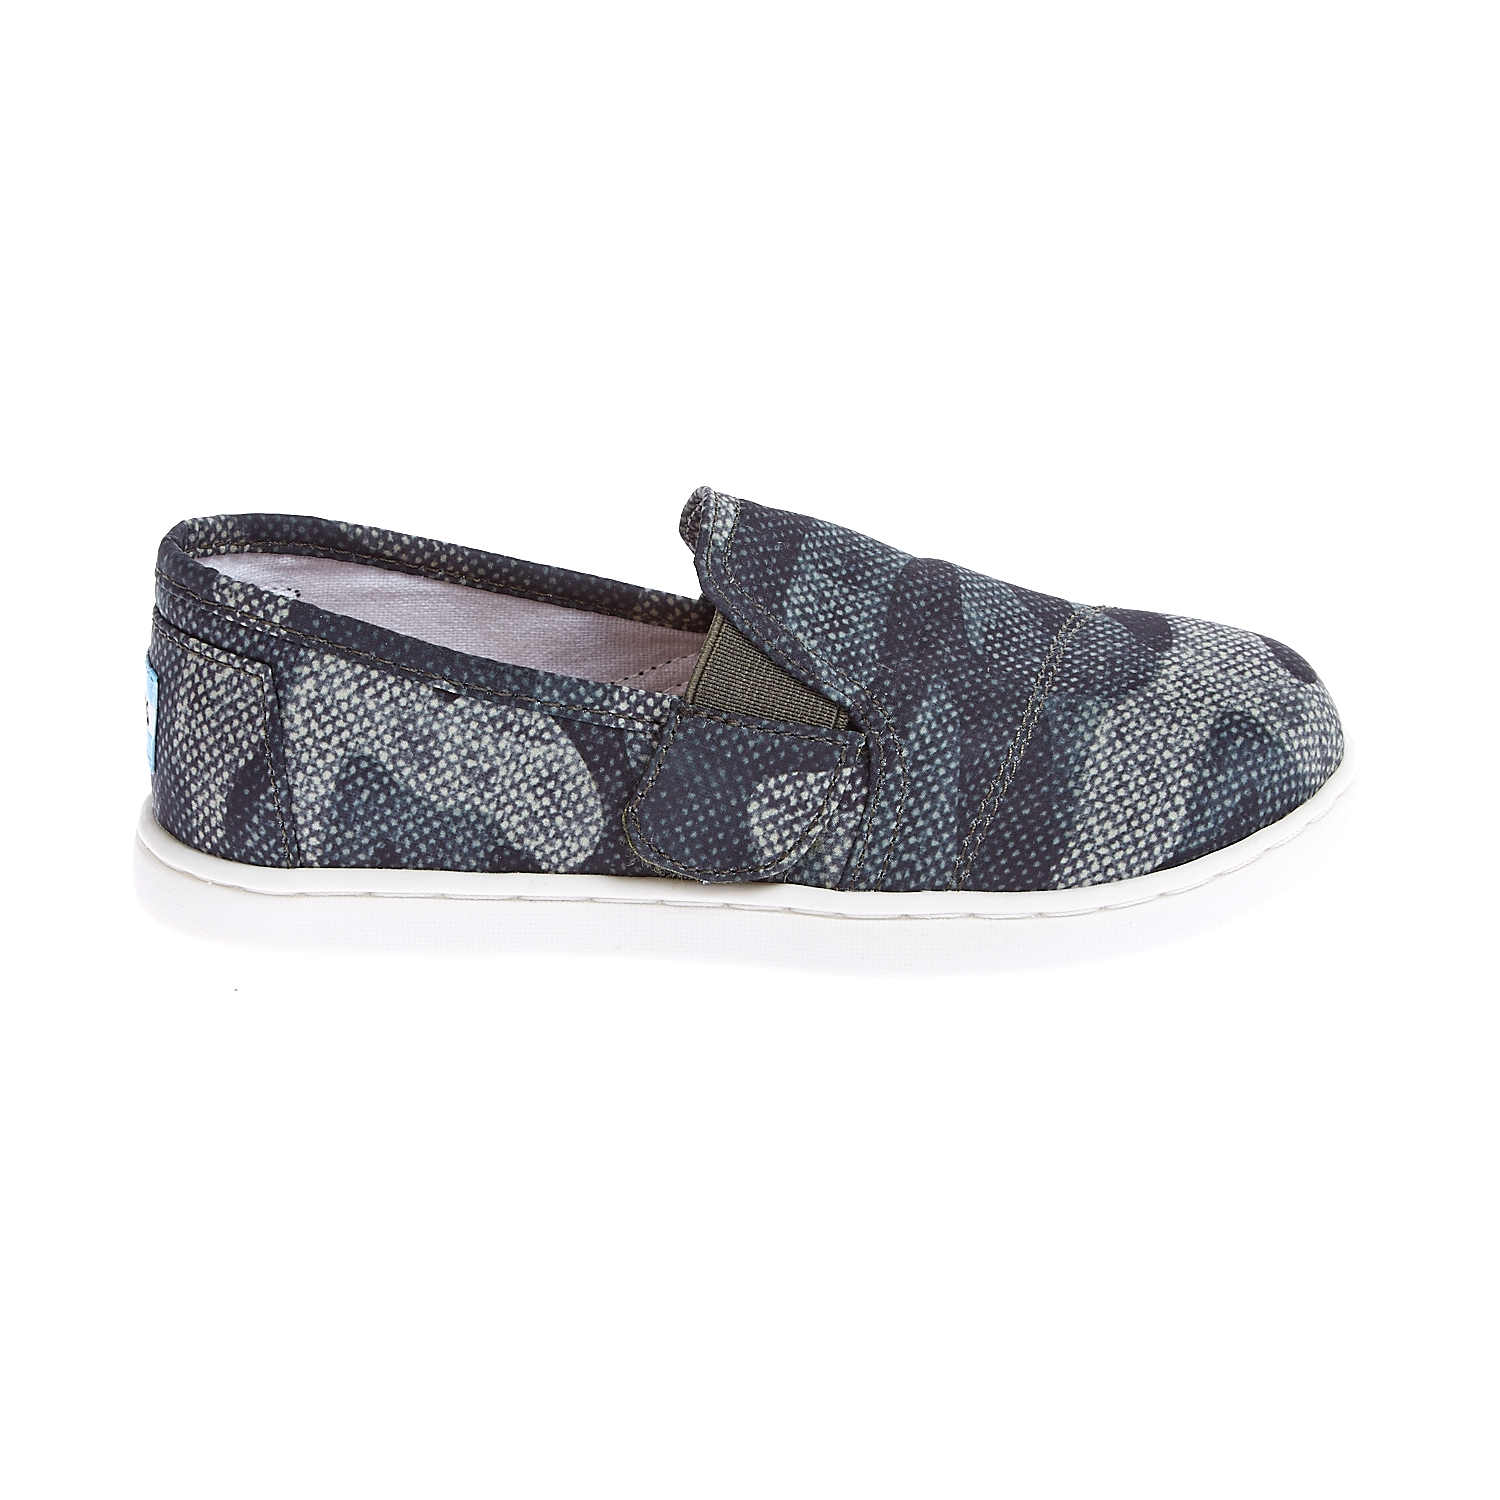 TOMS - Βρεφικά παπούτσια TOMS χακί